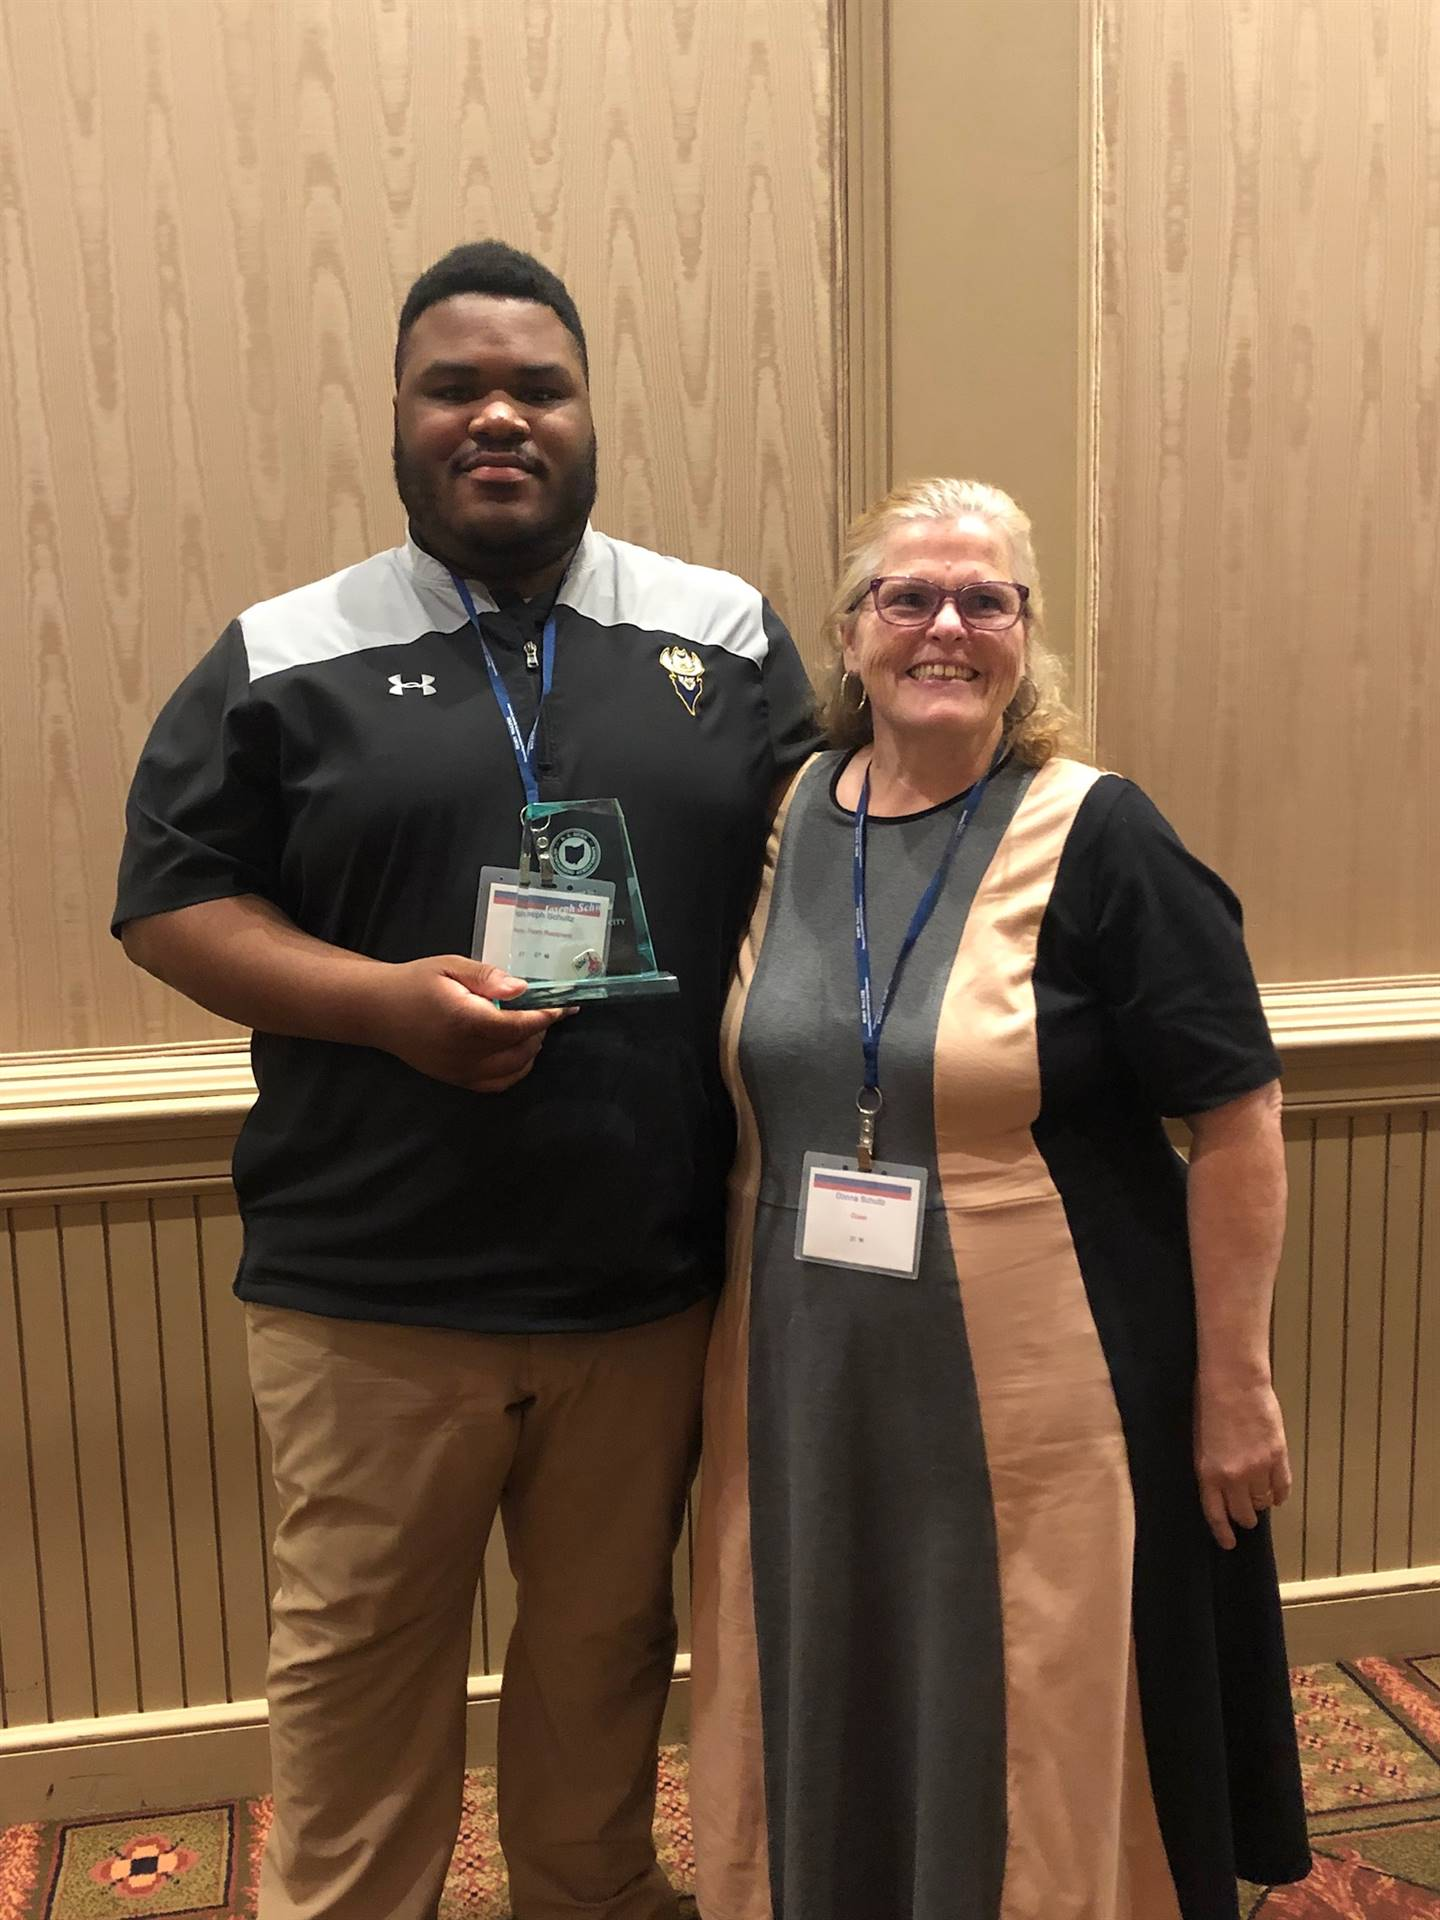 Joseph Schultz (pictured with his mother) receives the 2019 R.A. Horn Outstanding Student Achievemen